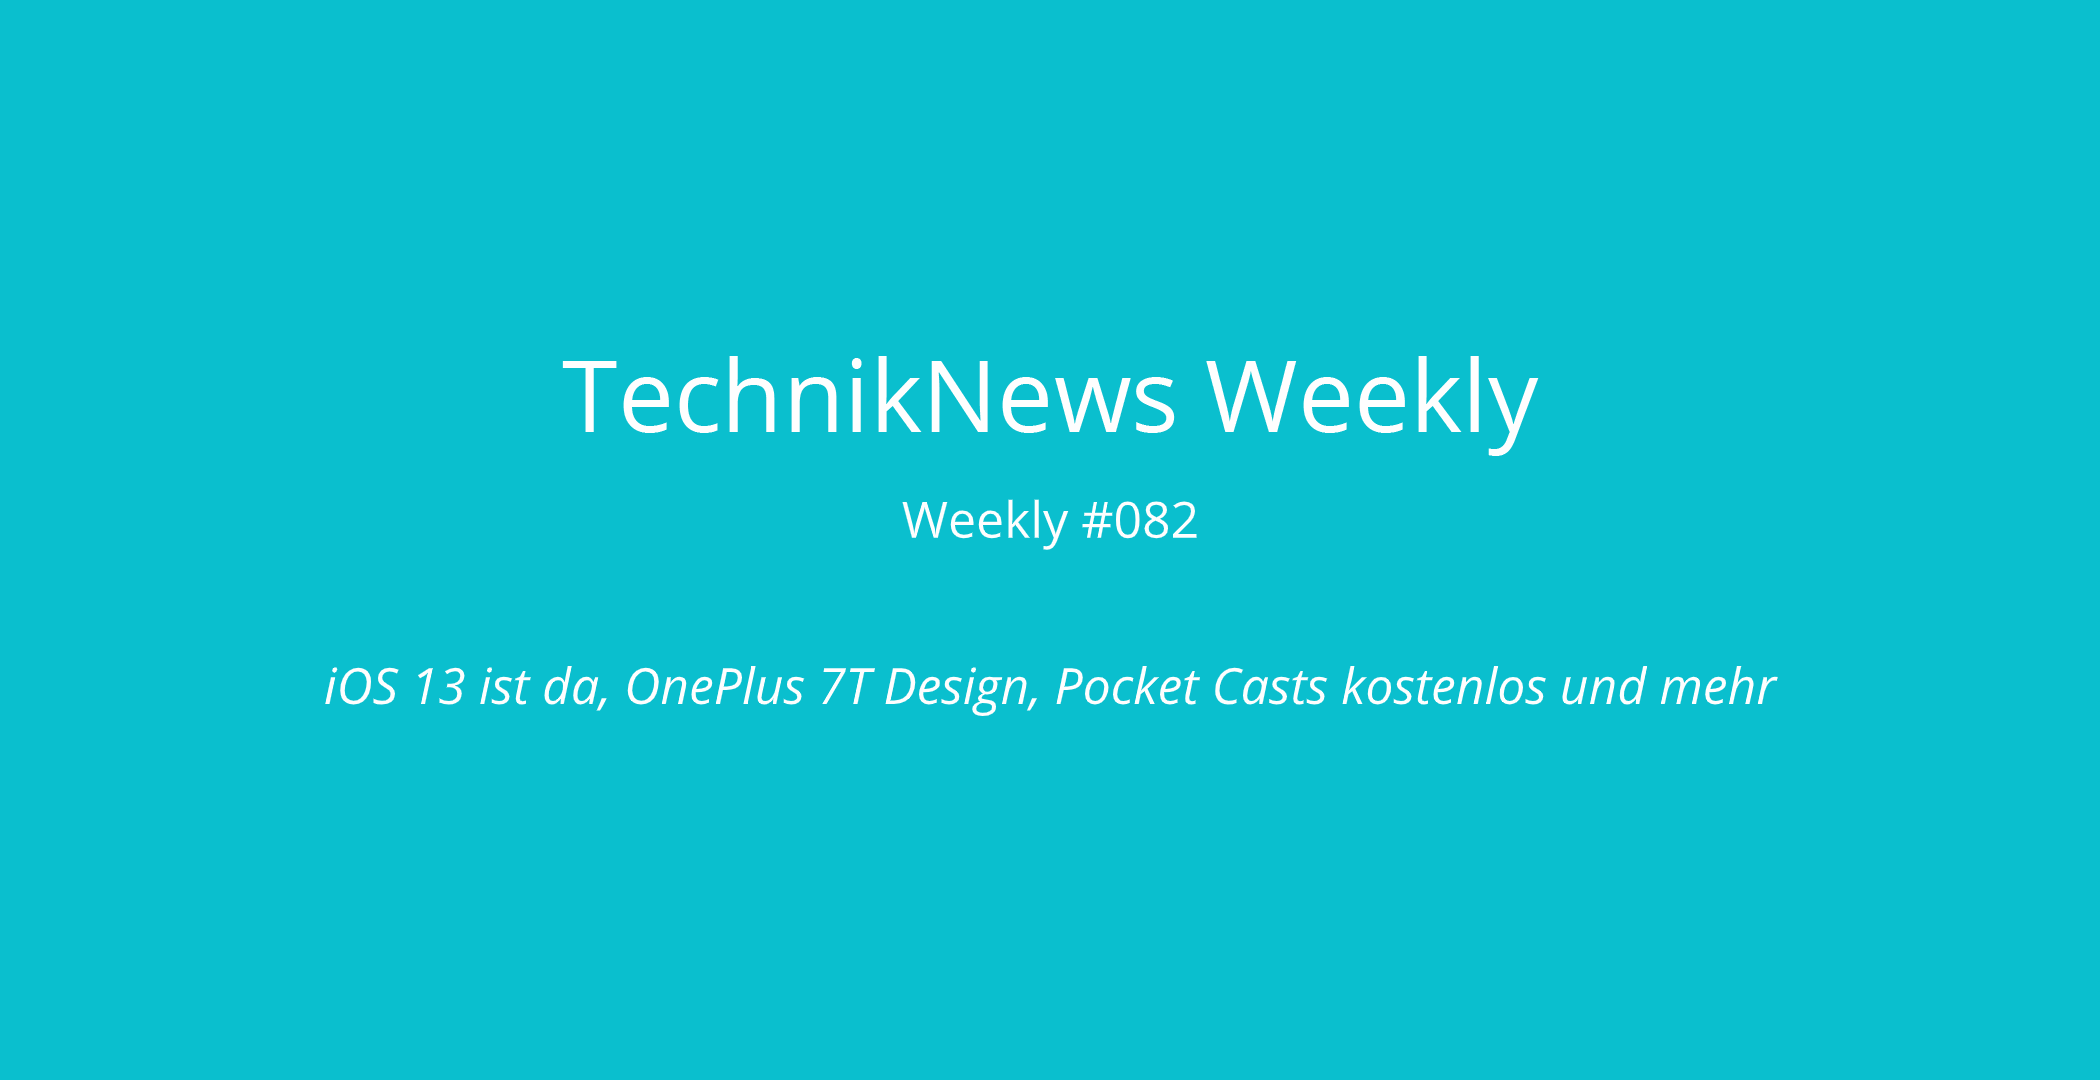 TechnikNews Weekly #082